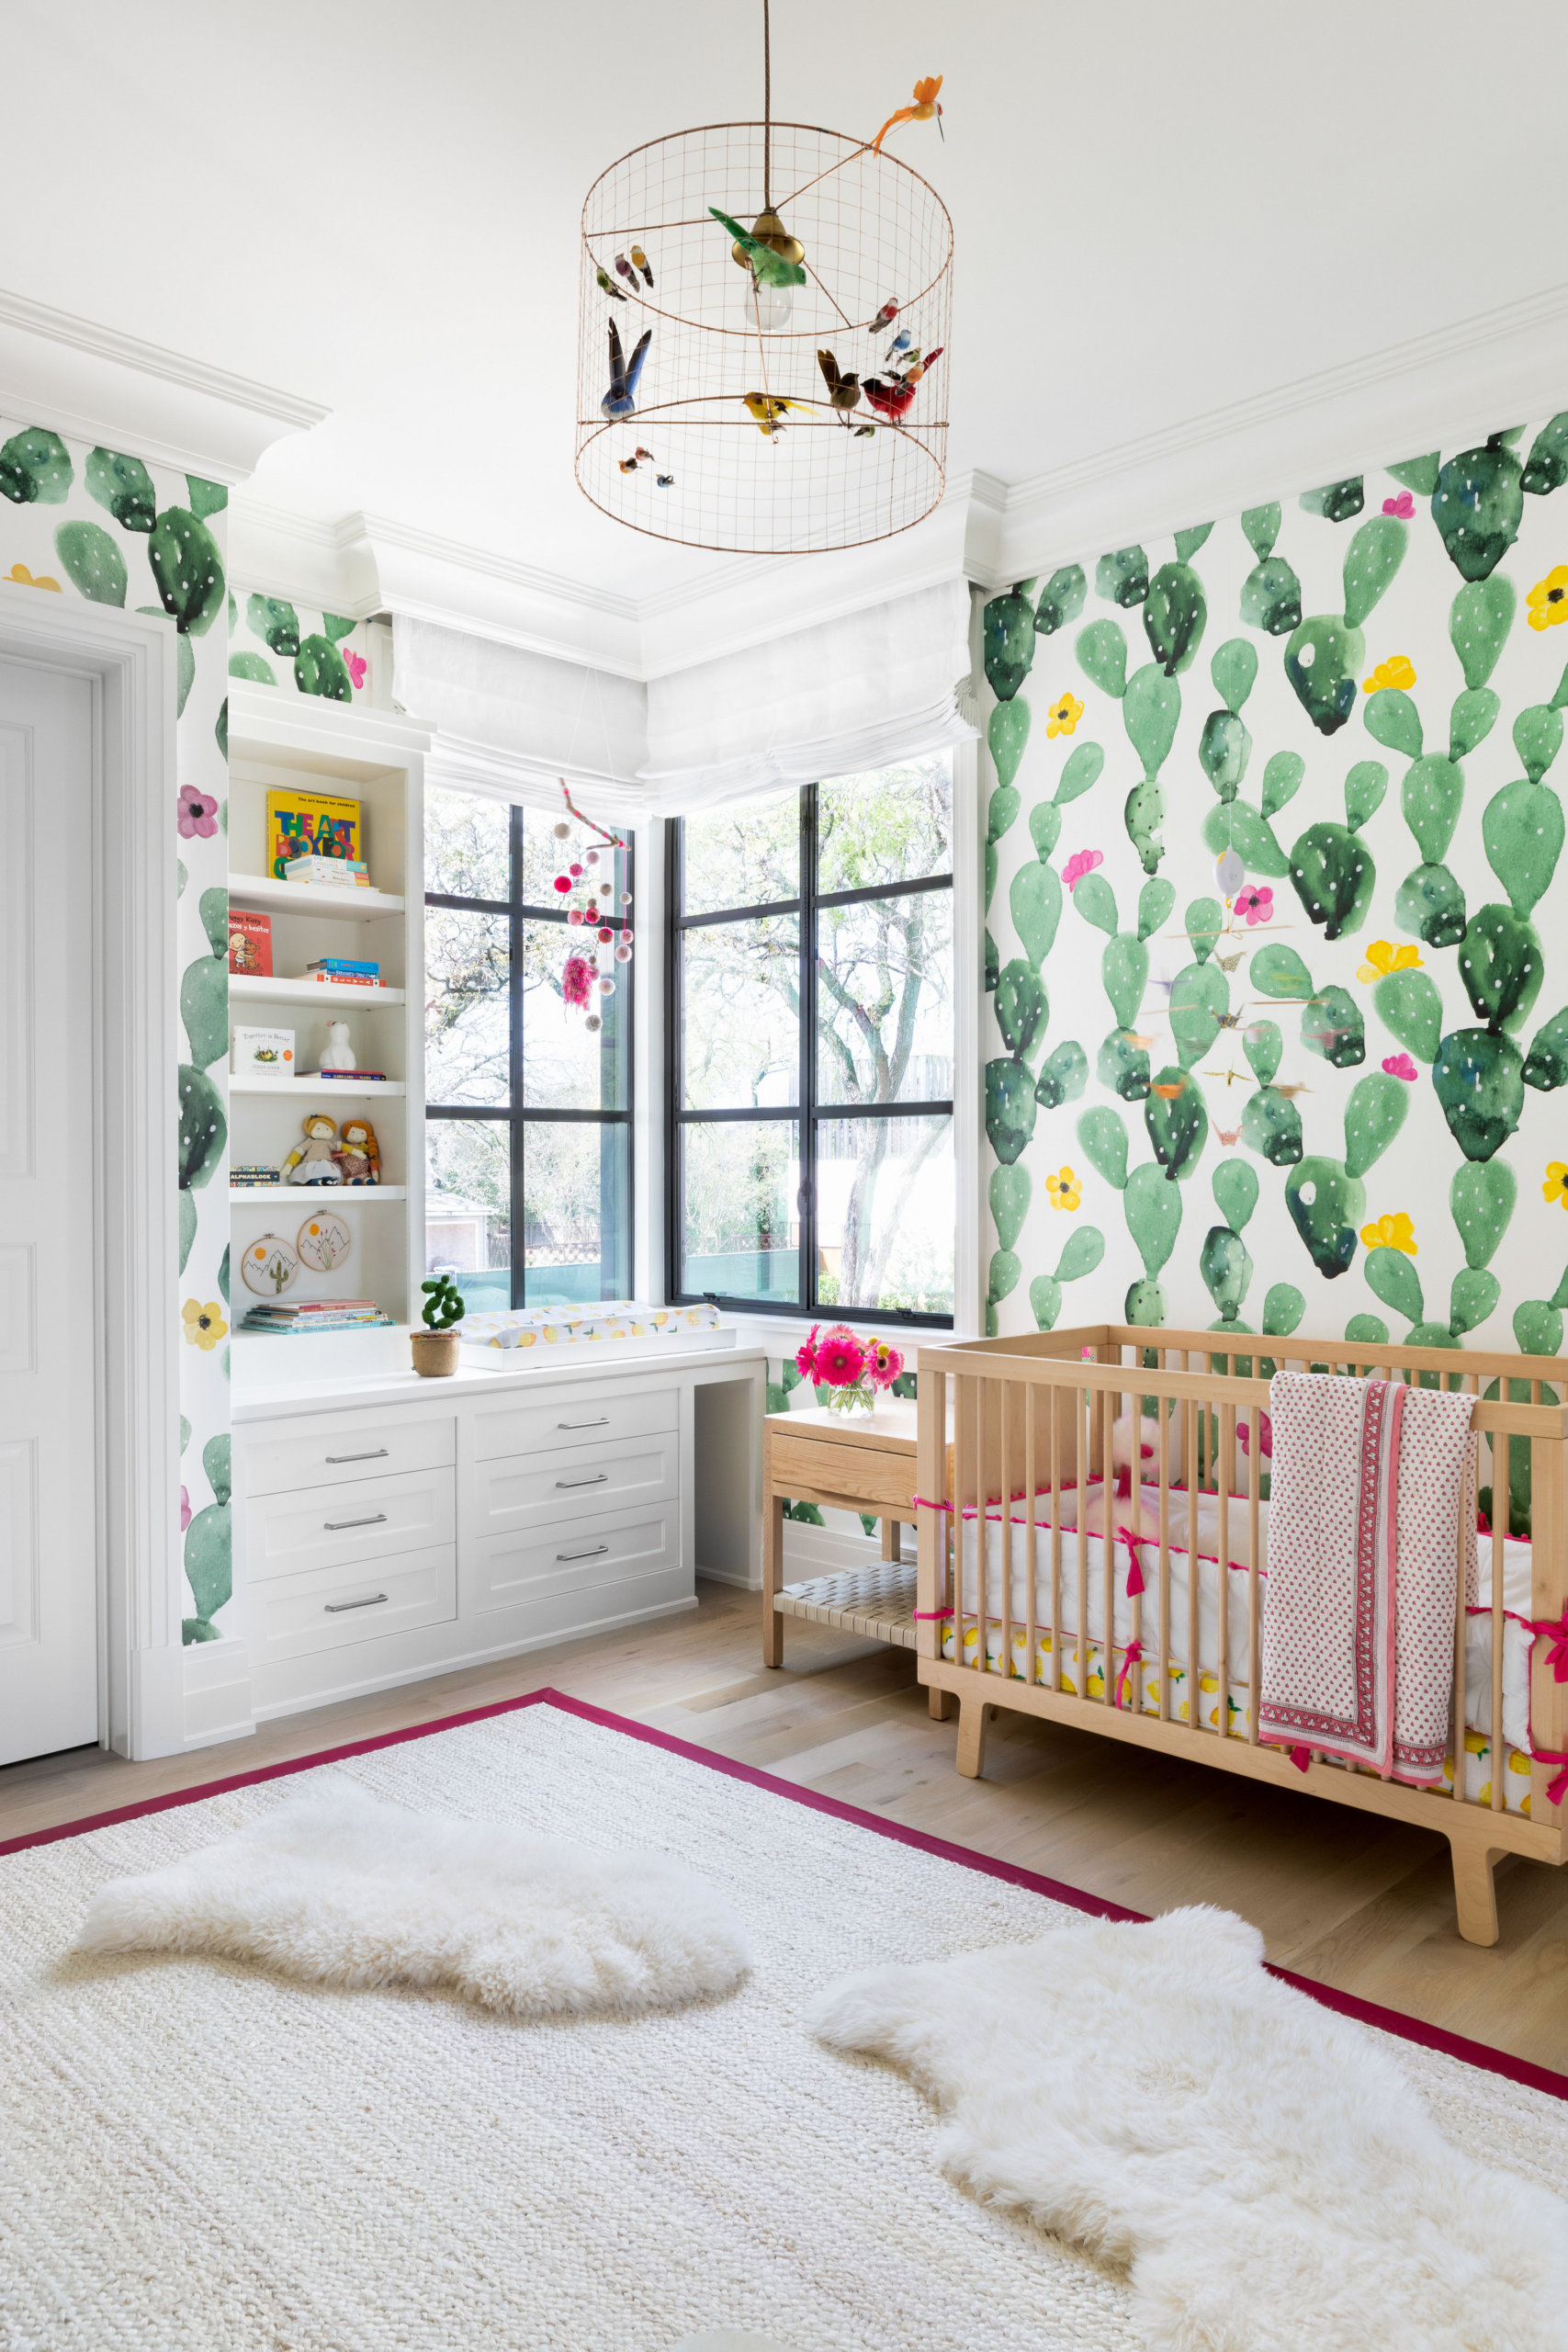 Finding-the-right-nature-centric-wallpaper-for-the-nursery-in-white-32902-scaled